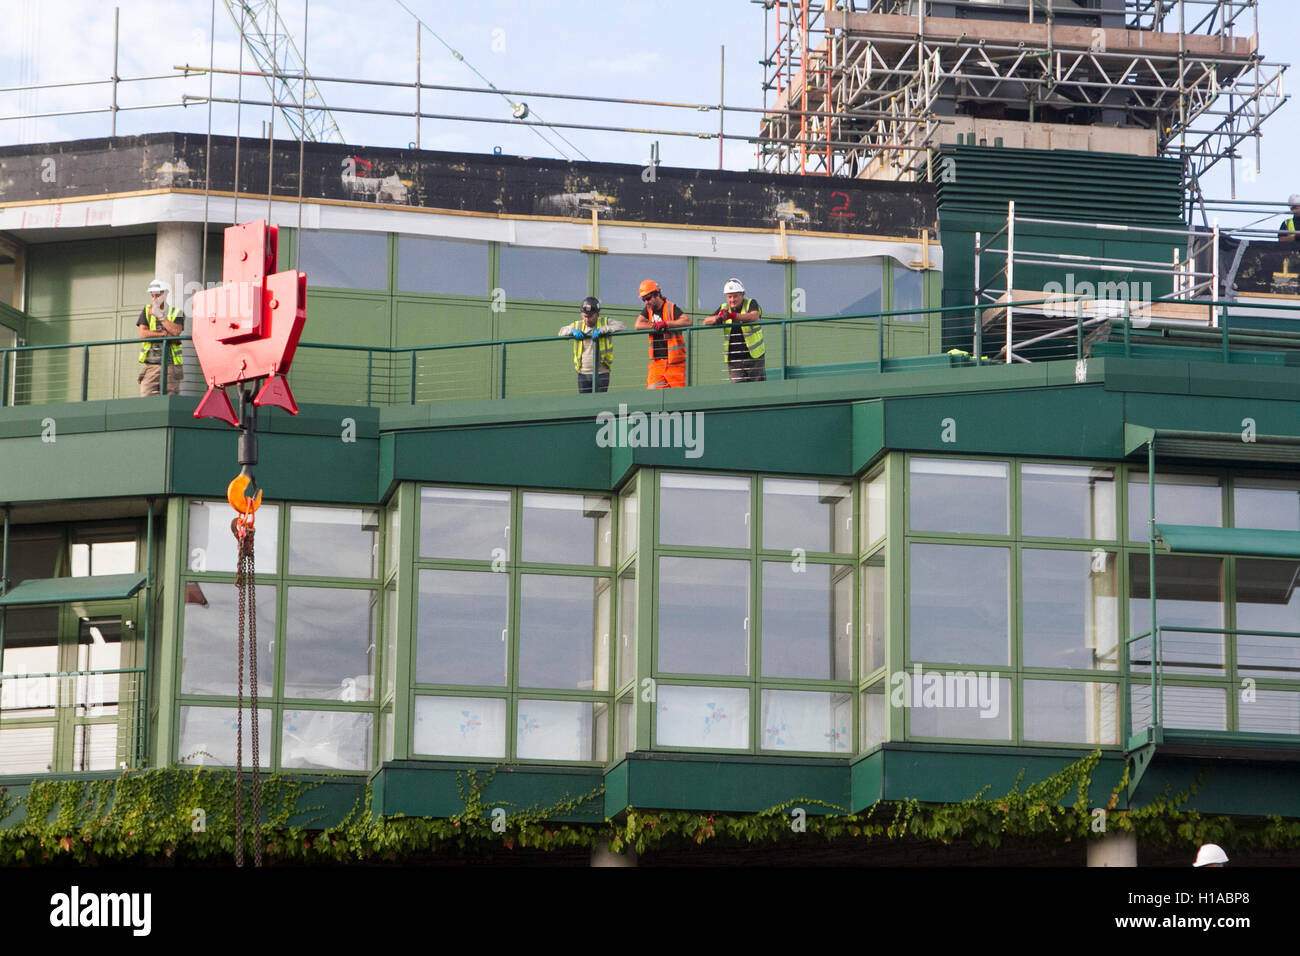 Wimbledon London, UK. 22nd Sep, 2016.  Work has started to install a new retractable weather roof on Court One of Stock Photo